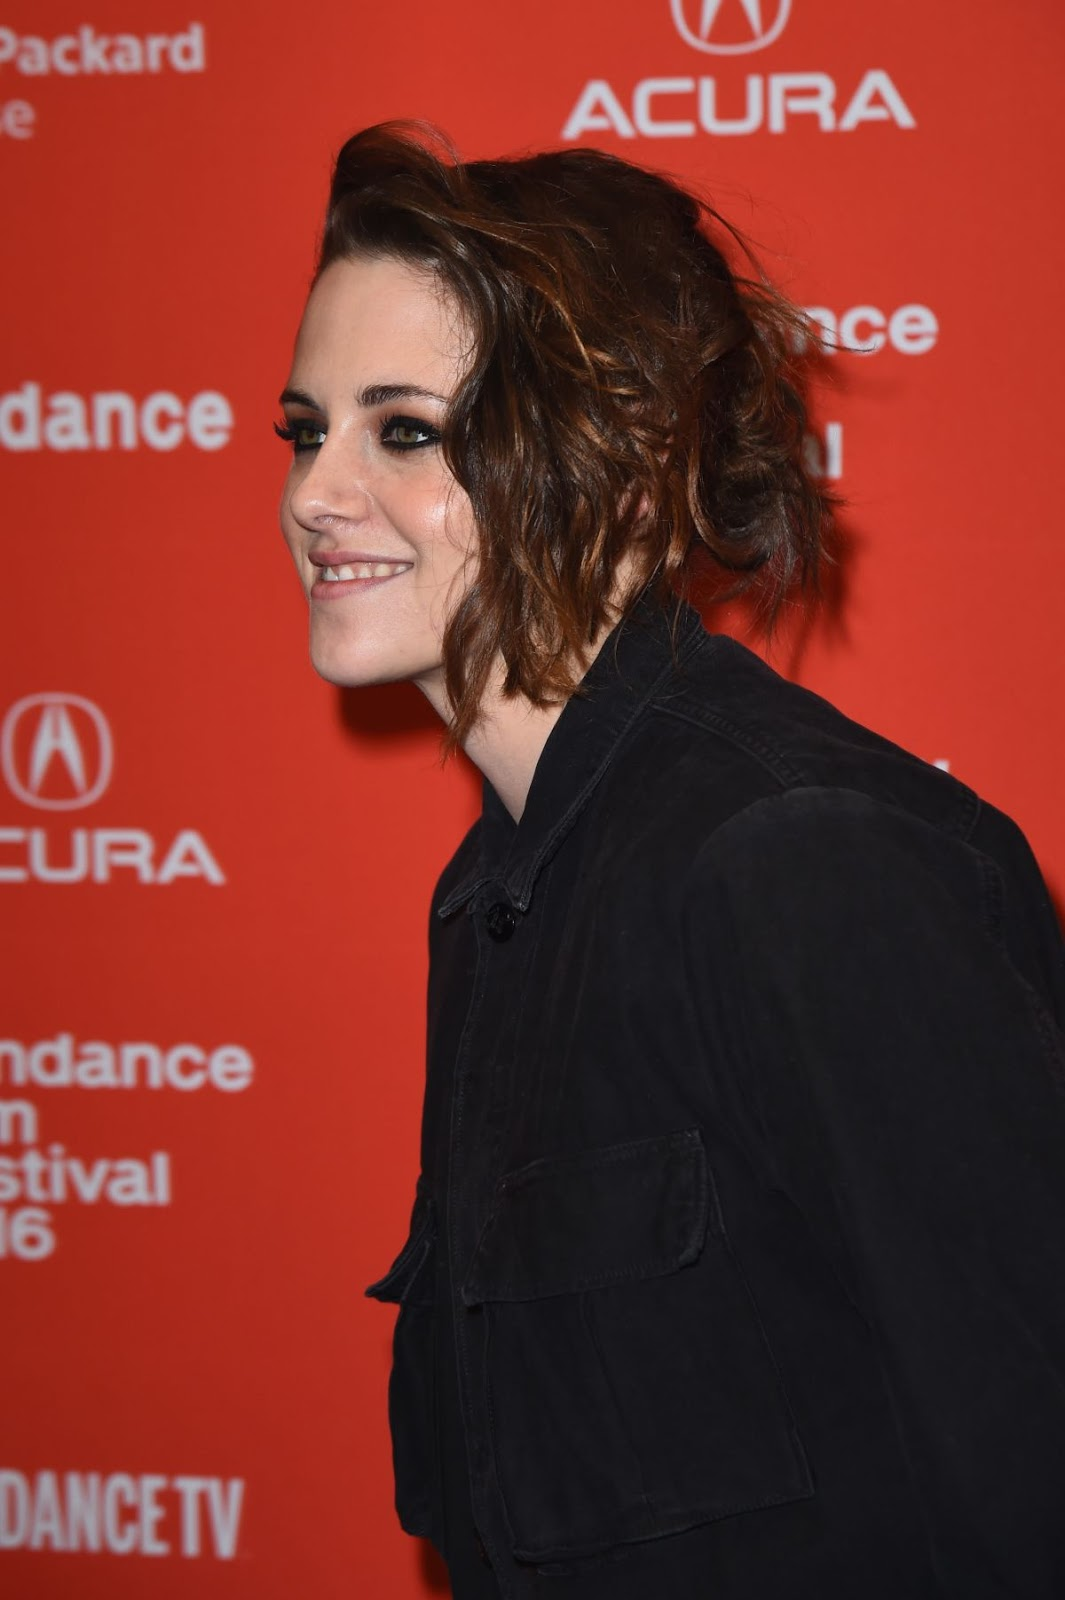 Kristen Stewart at Certain Women Premiere at Sundance Film Festival